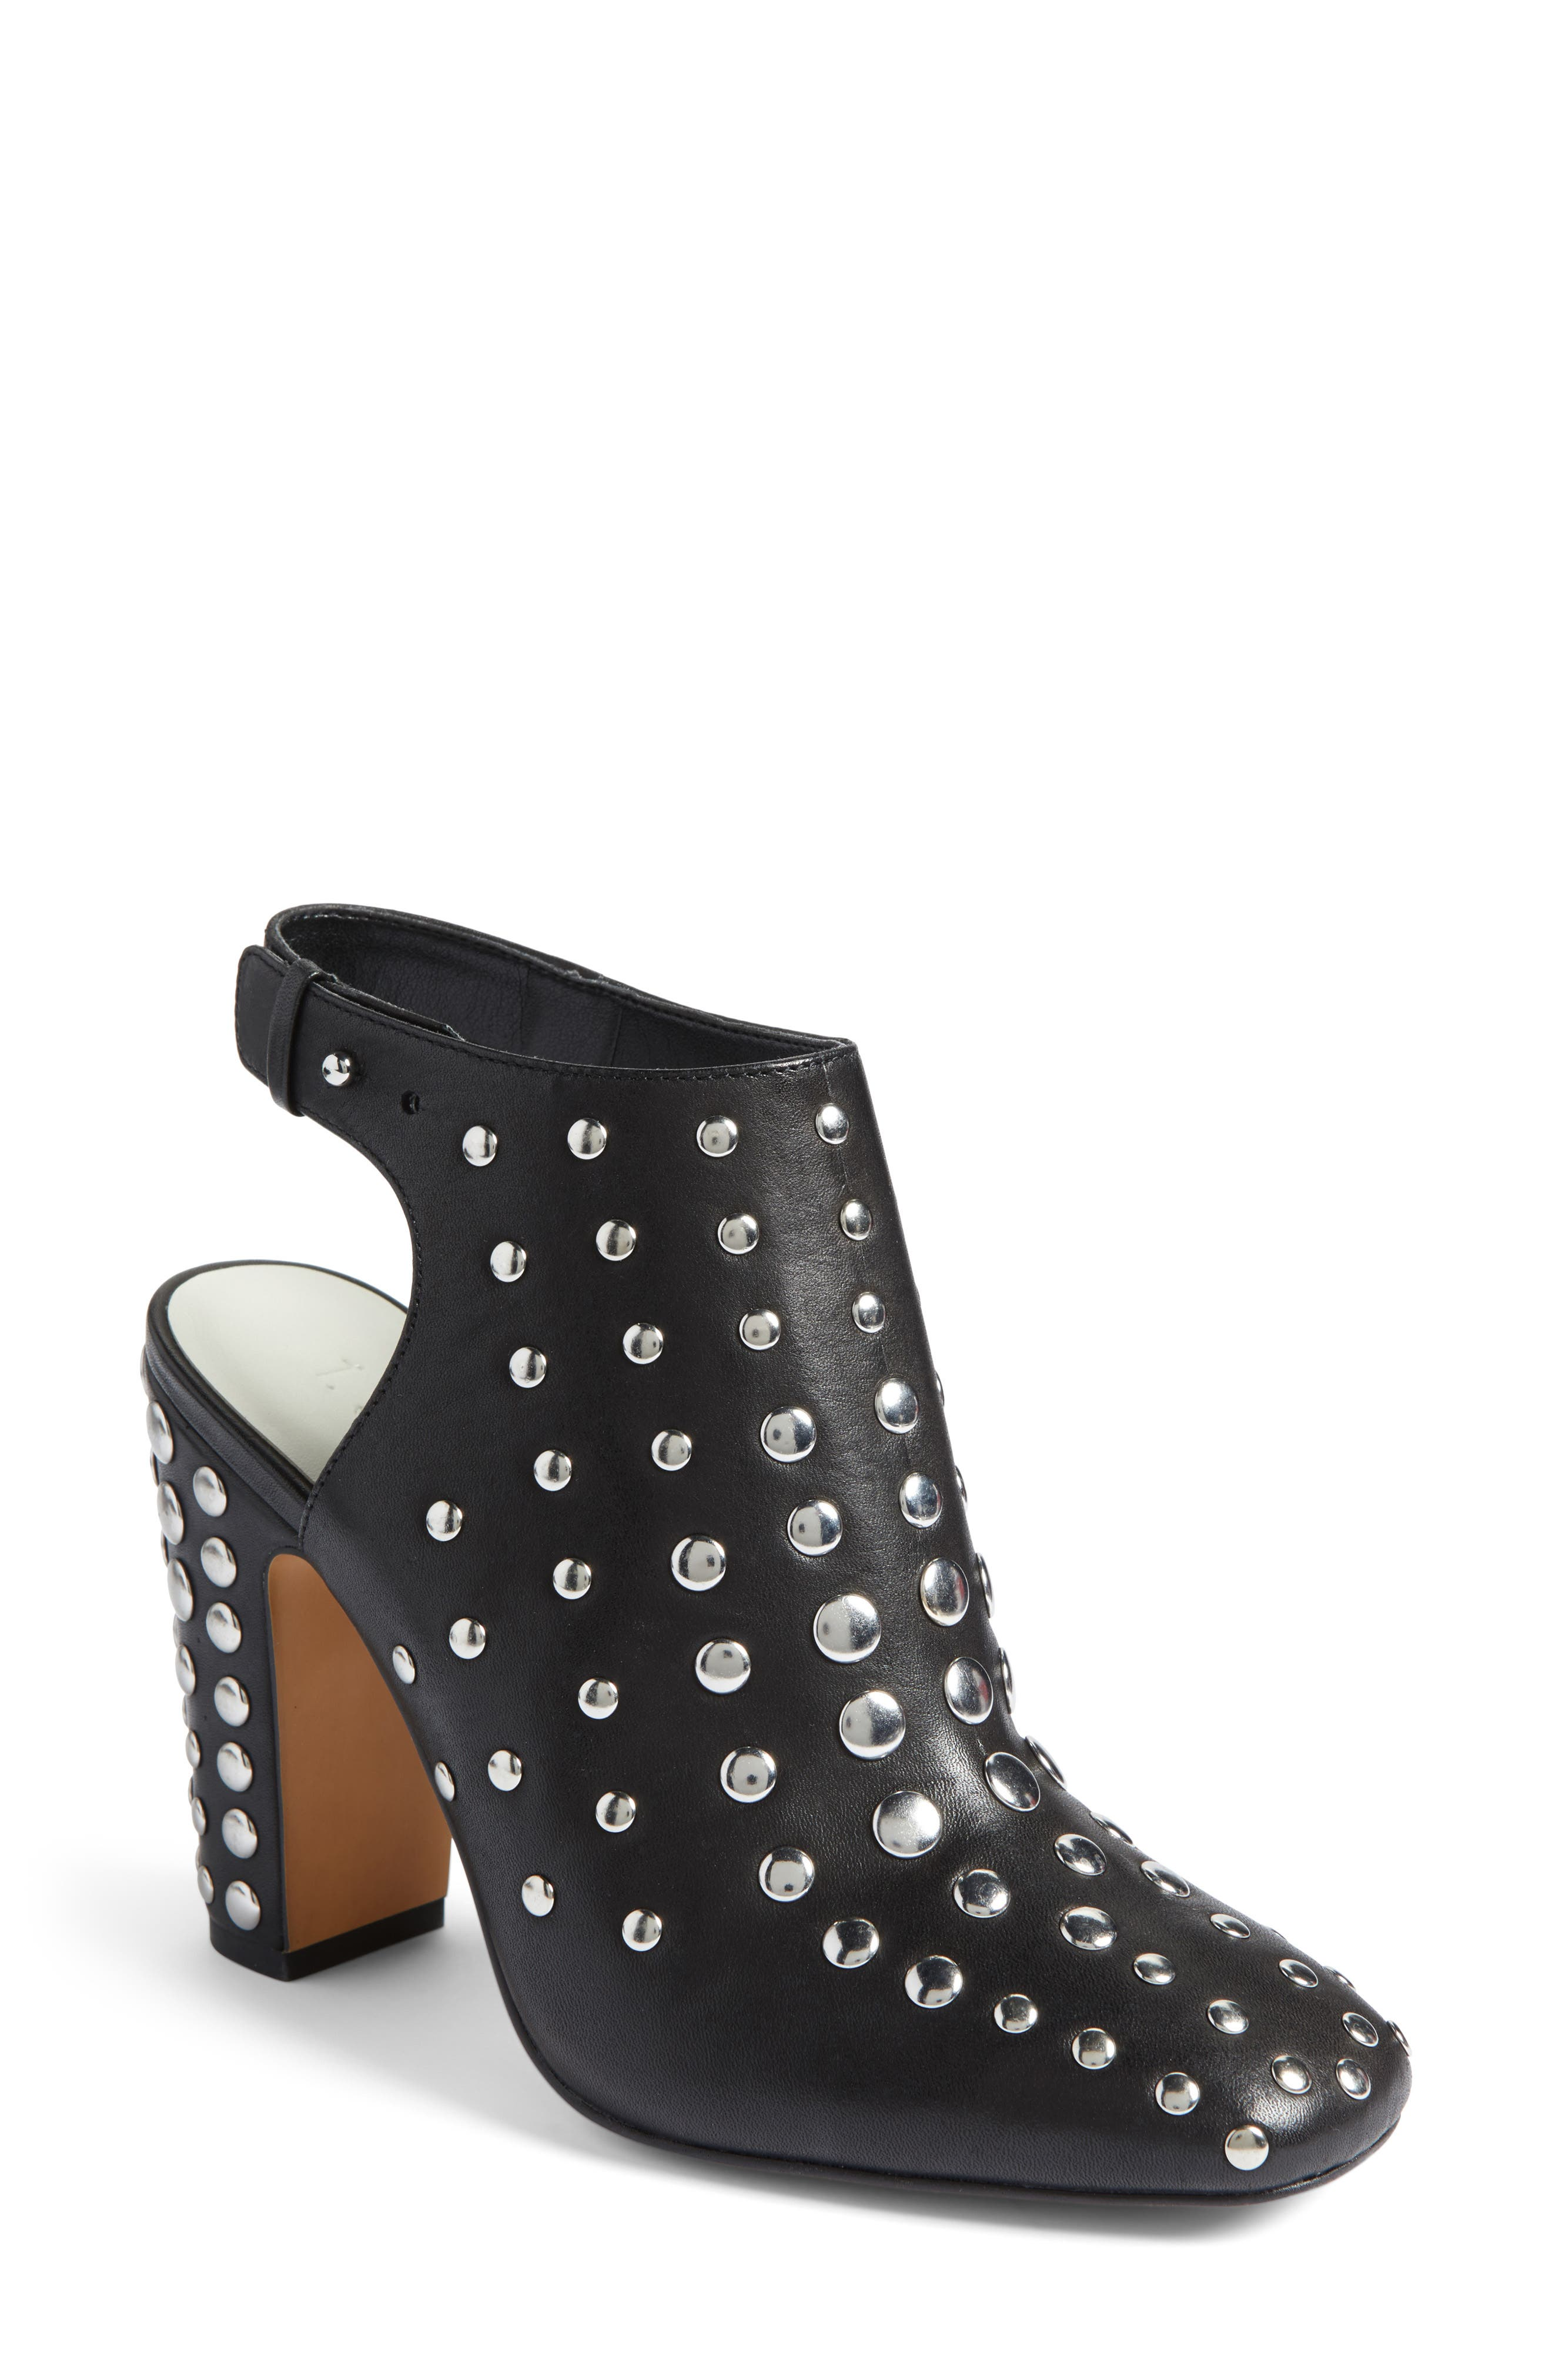 Alternate Image 1 Selected - 1.STATE Ryel Studded Bootie (Women)